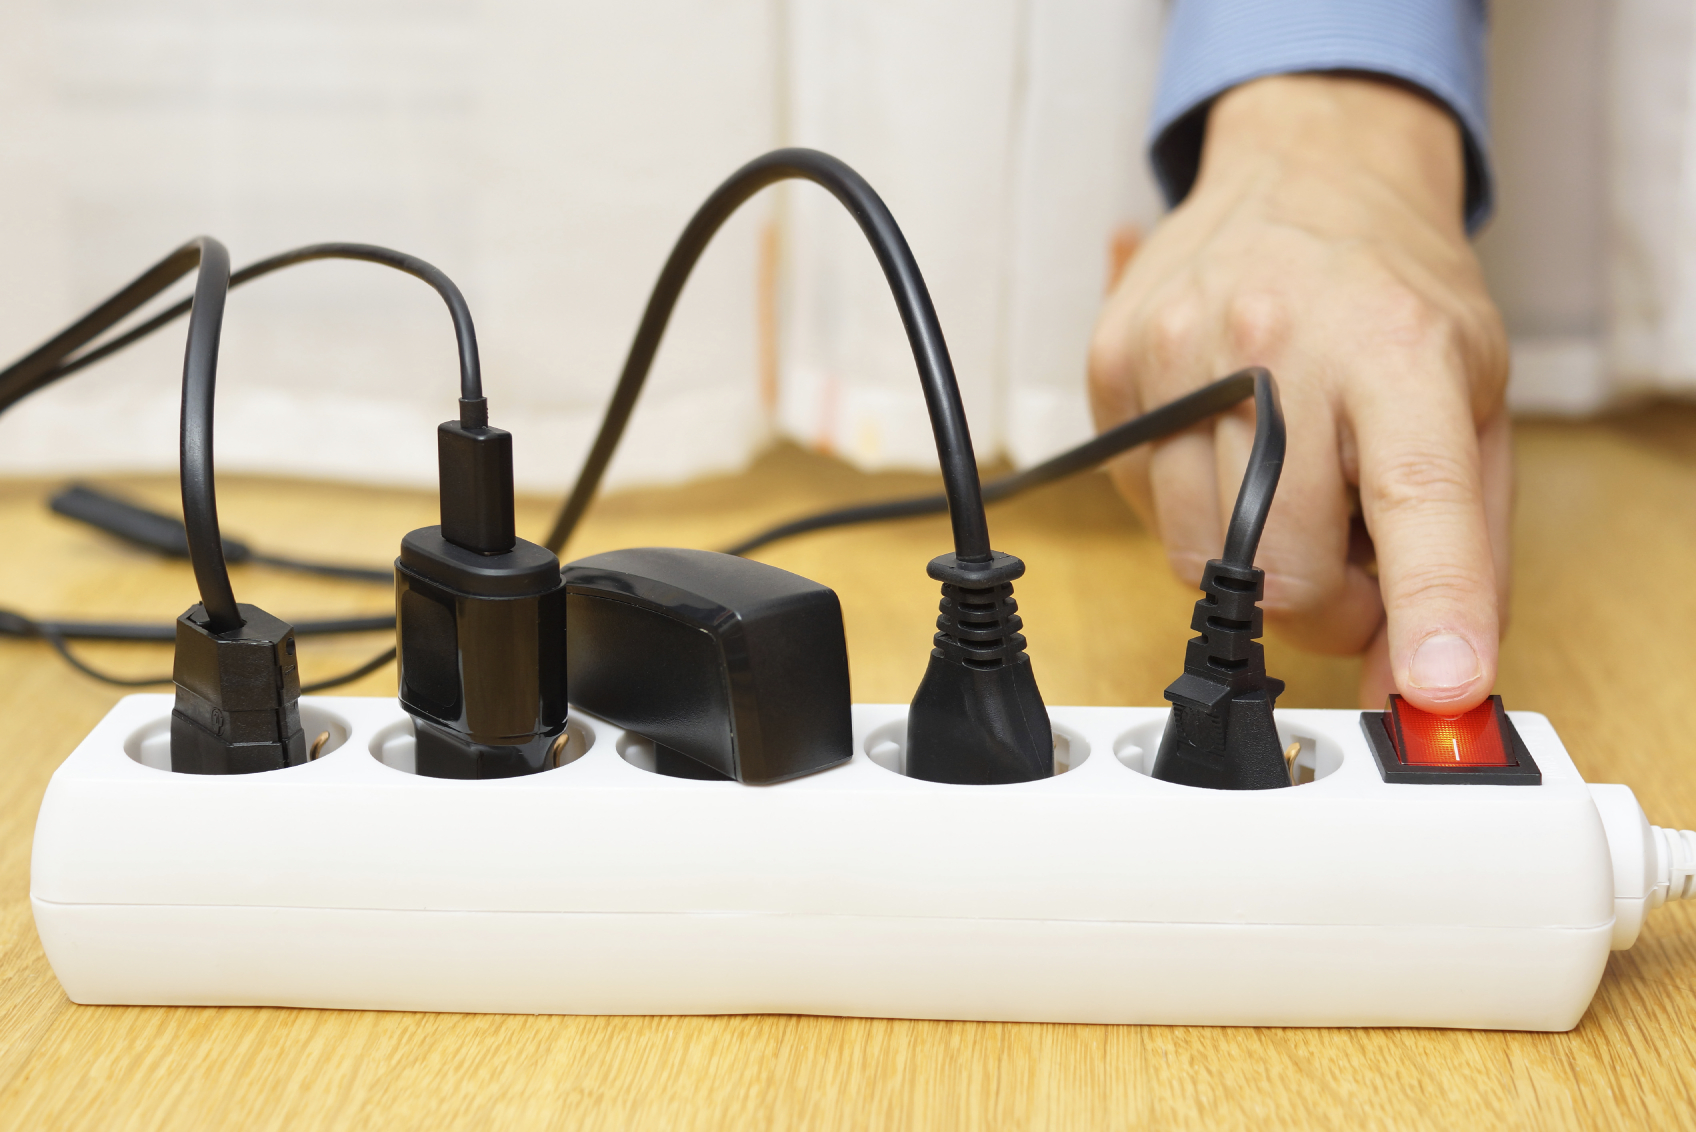 10 Simple Ways to Lower Your Energy Bill